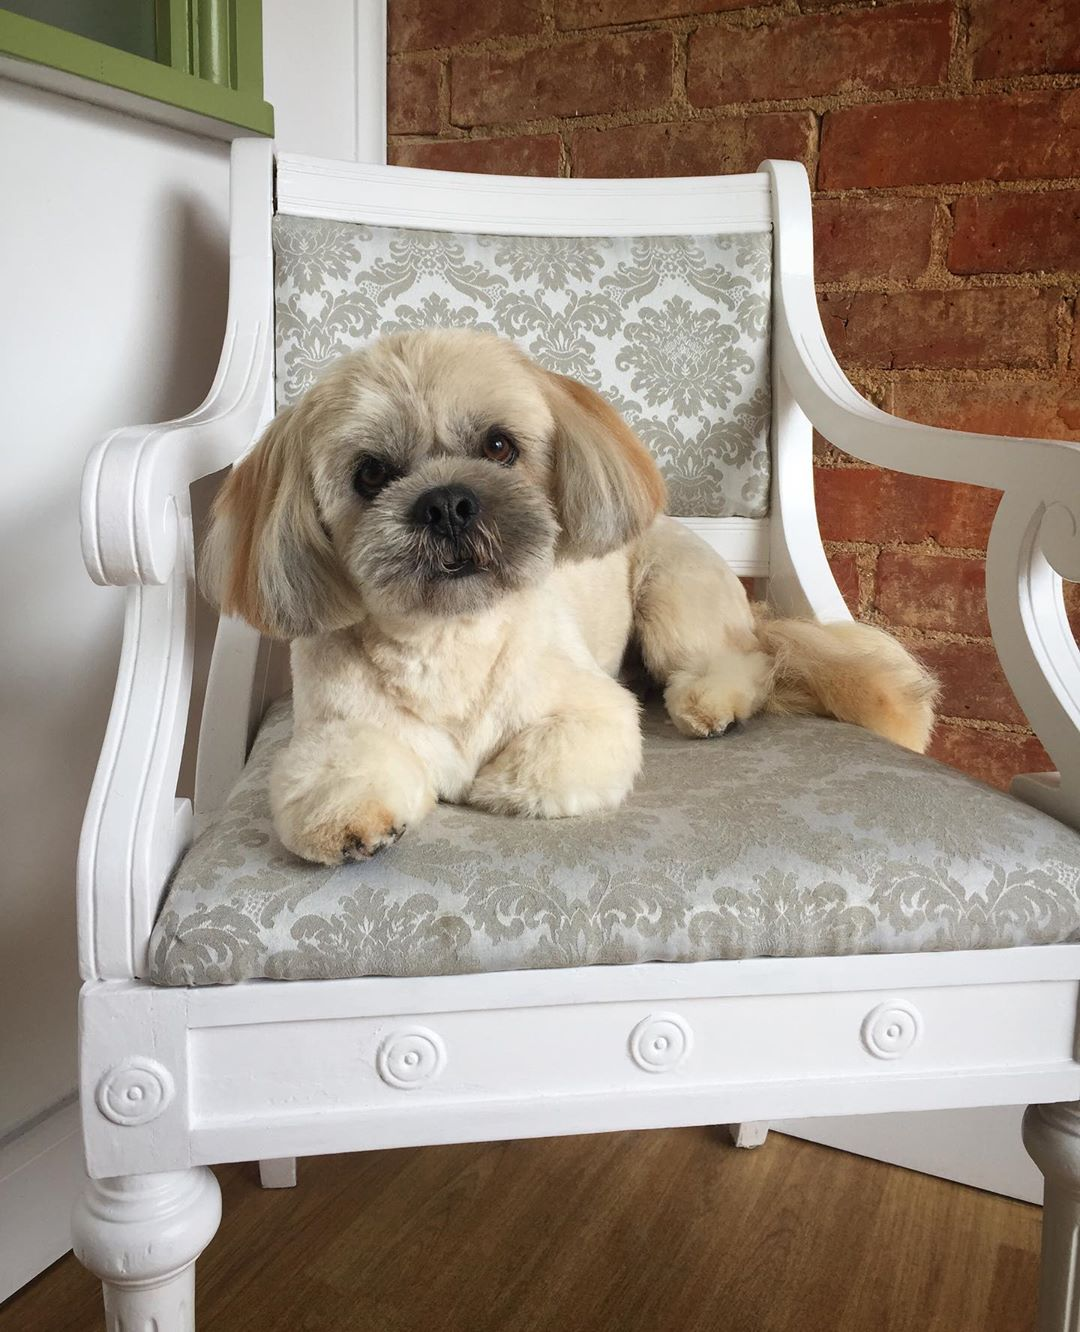 Lhasa Apso Full Groom Treatment